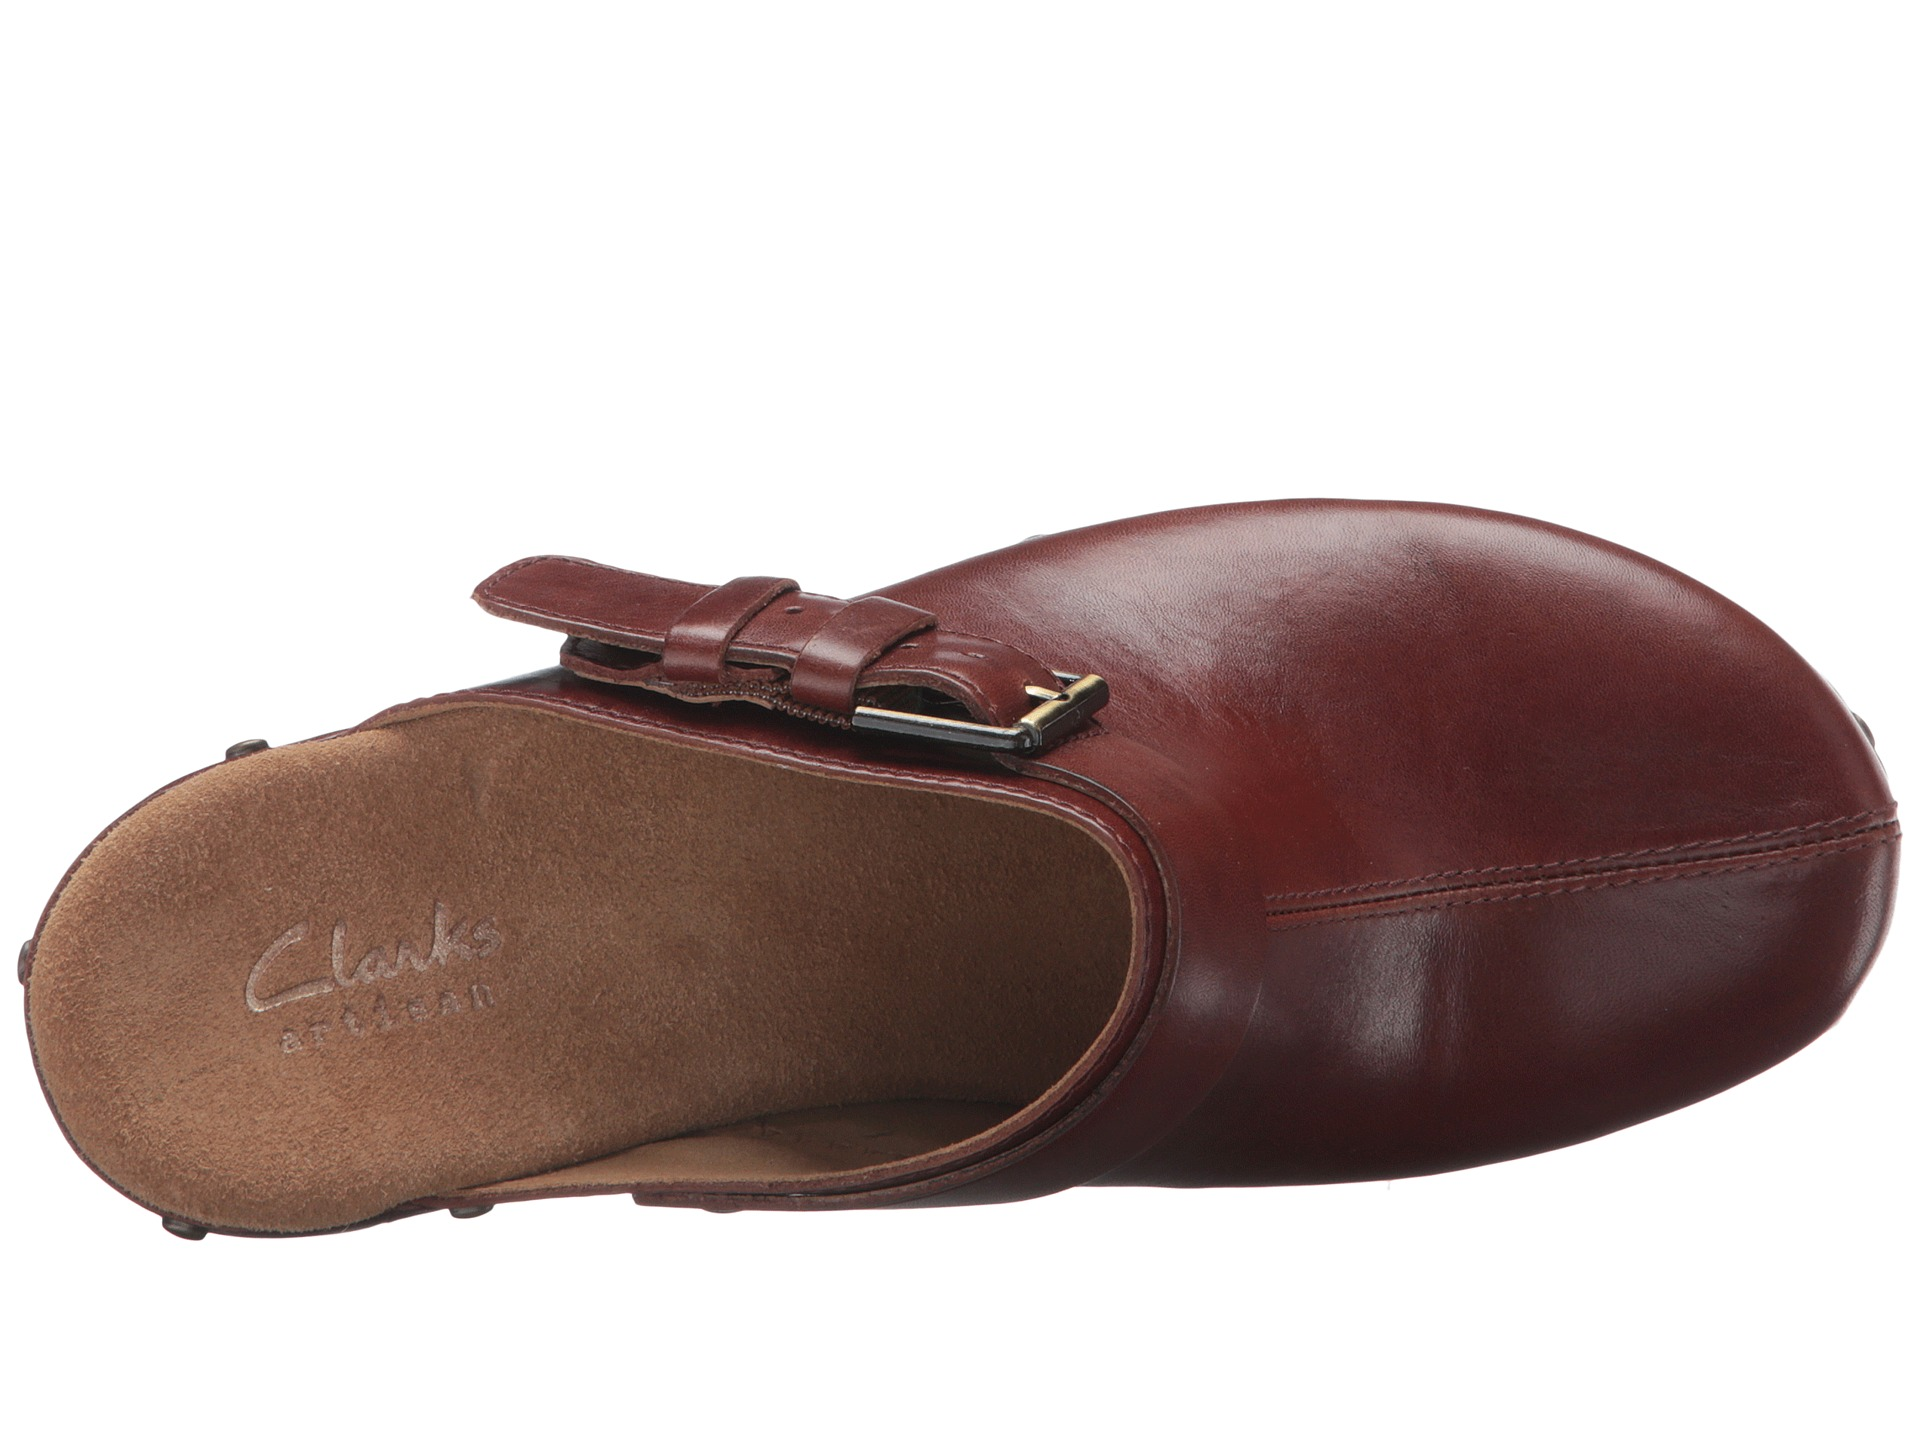 Clarks Ledella York at 6pm.com